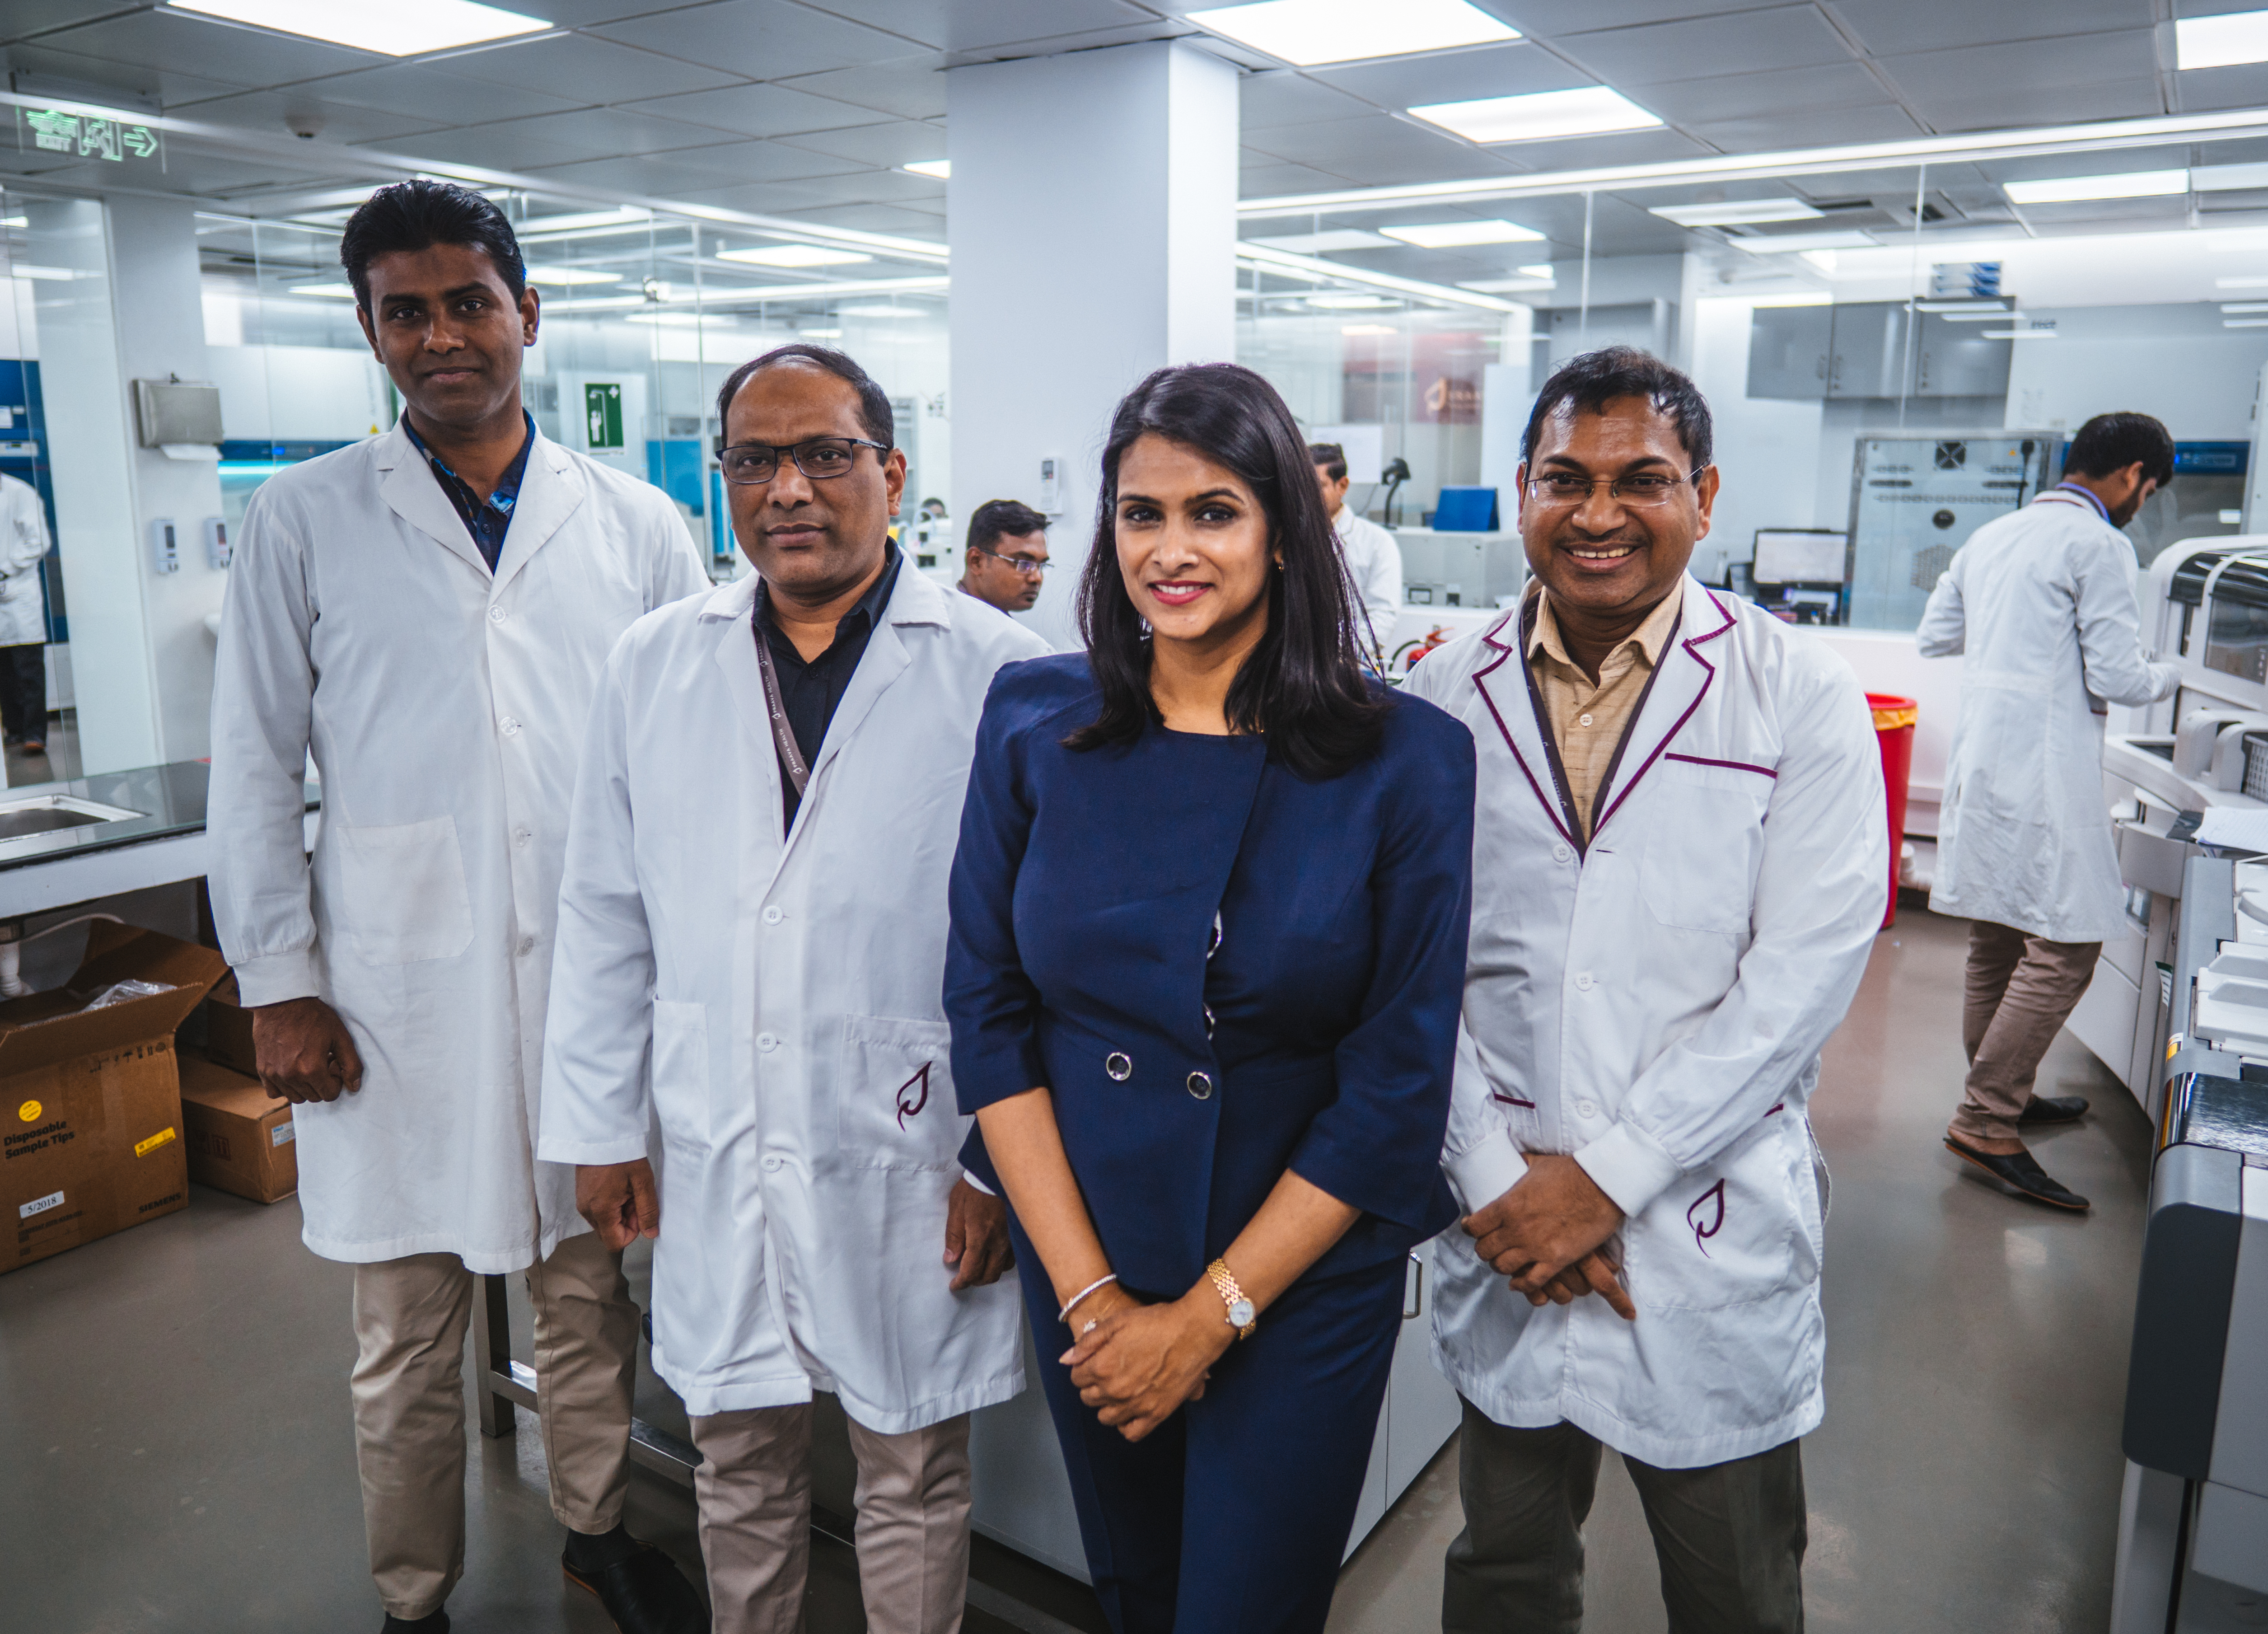 Praava Health founder and chief executive officer Sylvana Sinha (third from left) at one of the company's healthcare centers